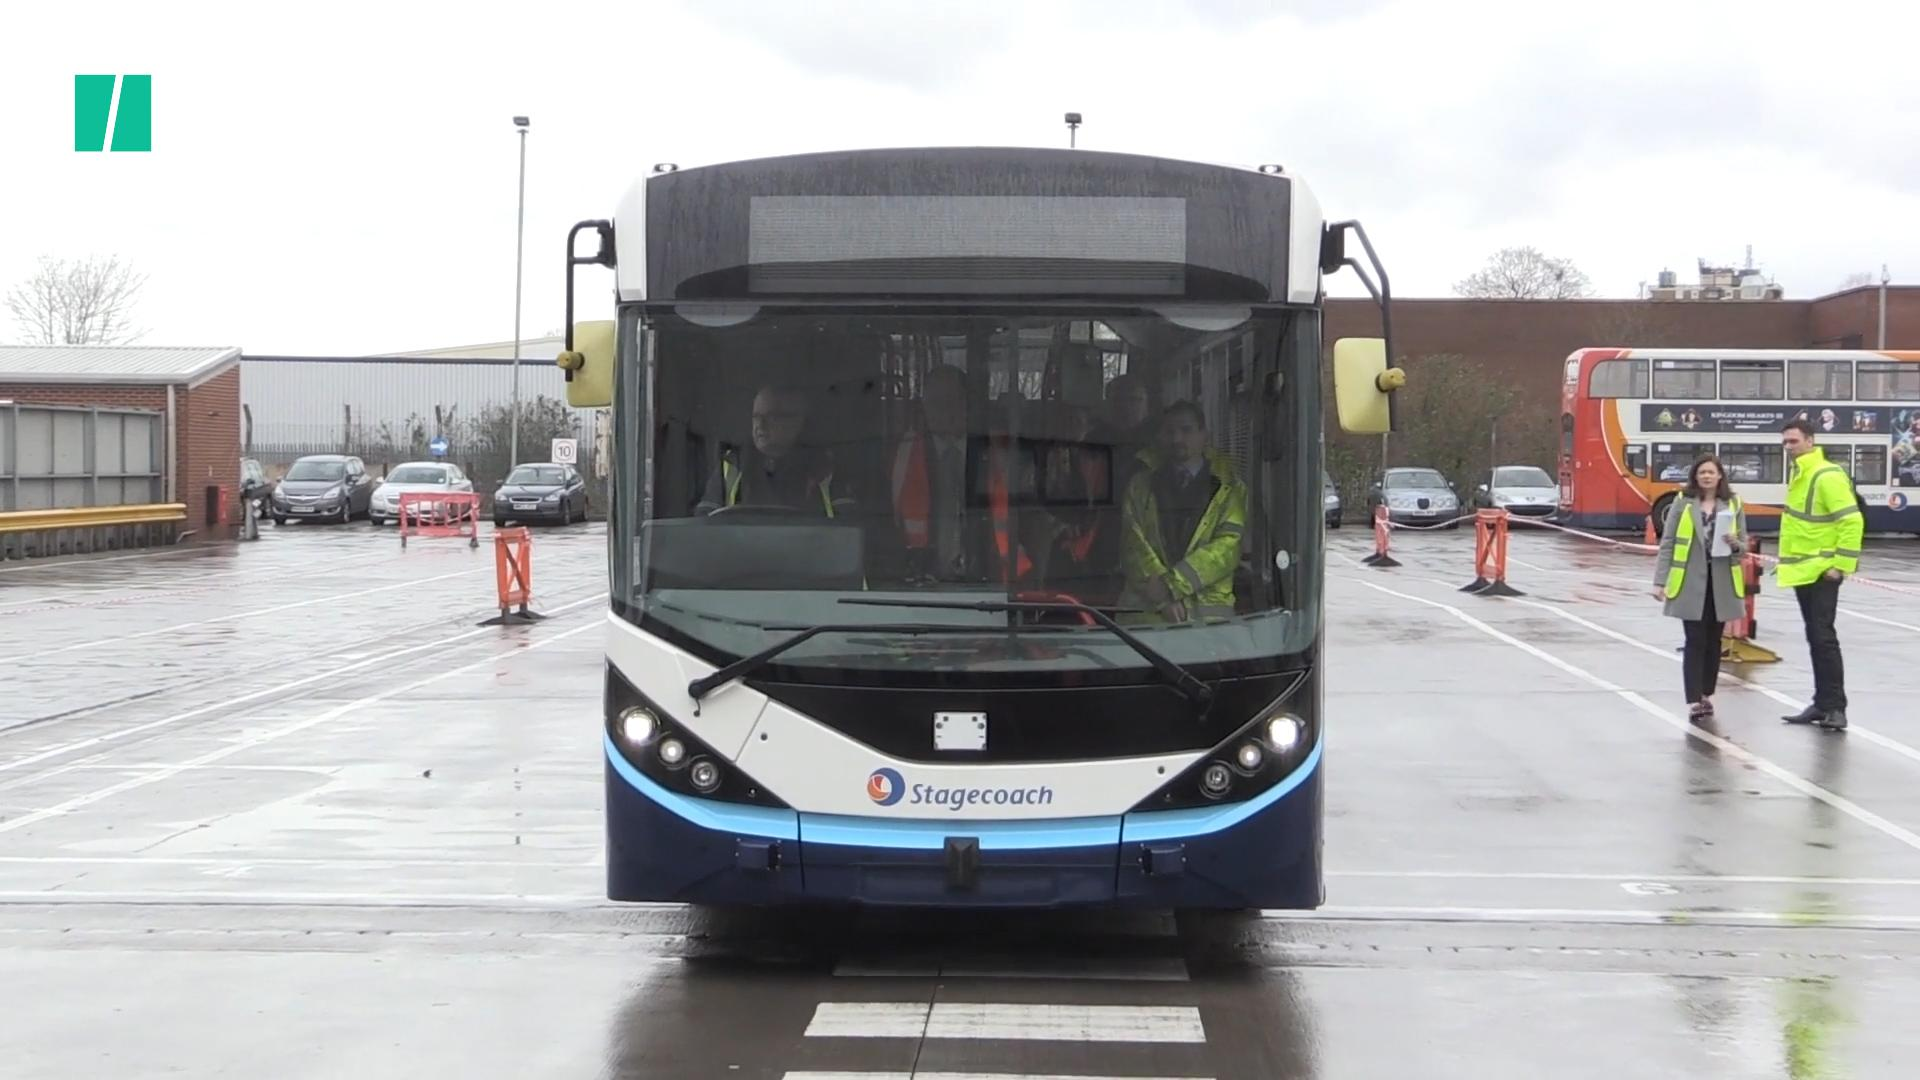 First UK Driverless Bus Tested In Manchester